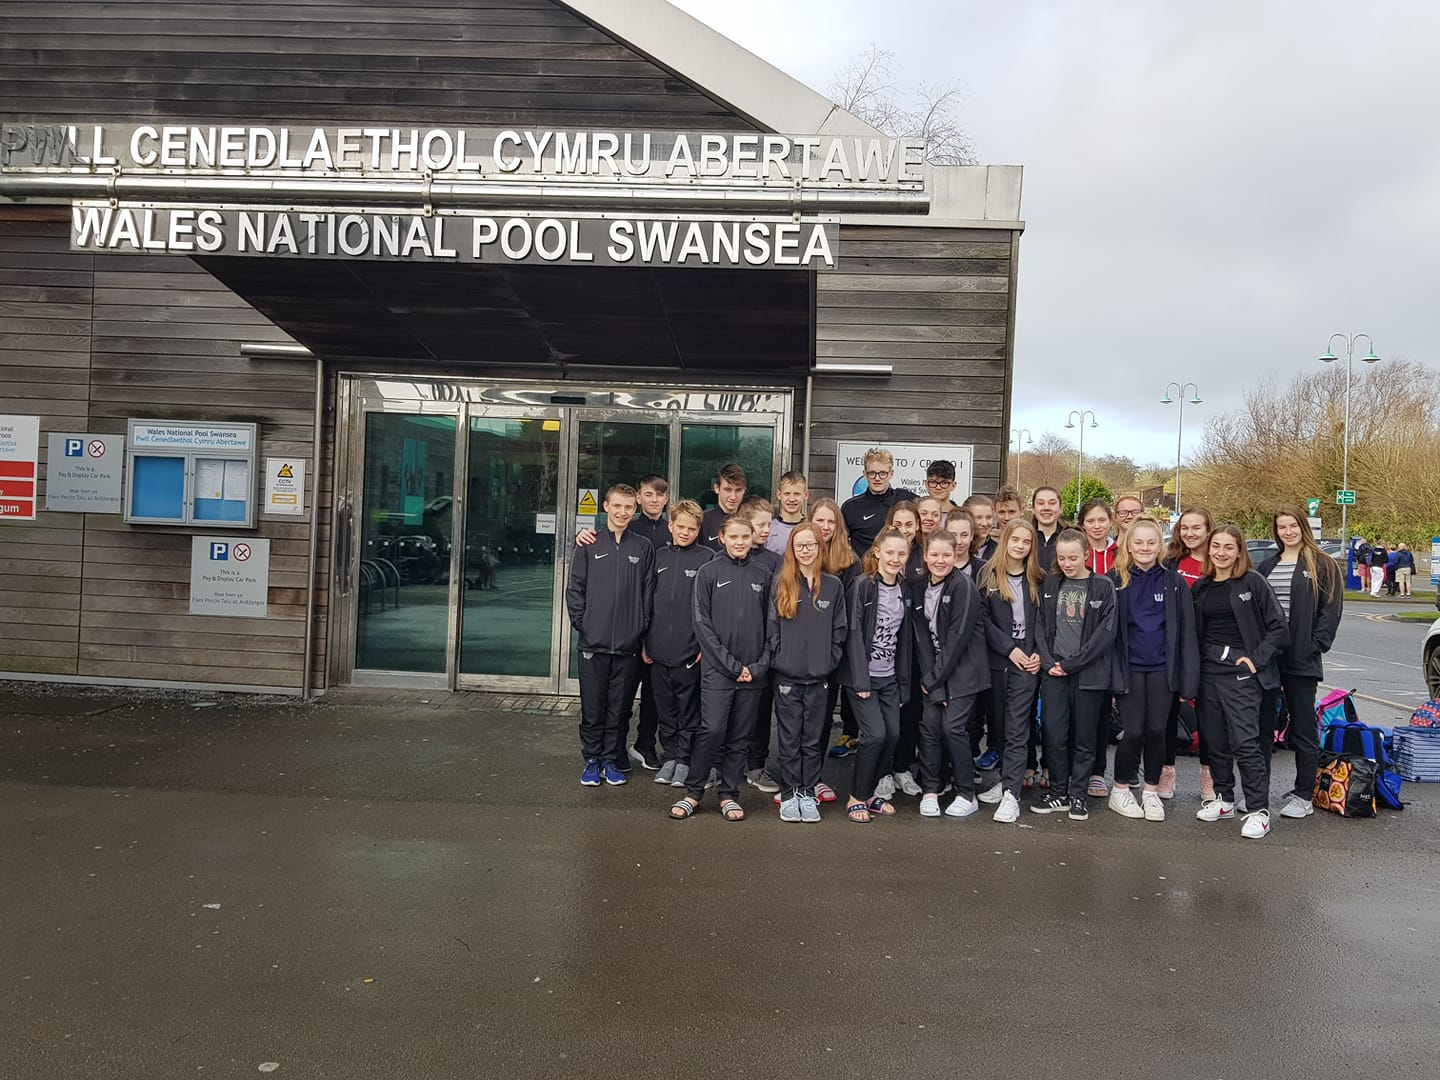 WFSC's SWANSEA ADVENTURE